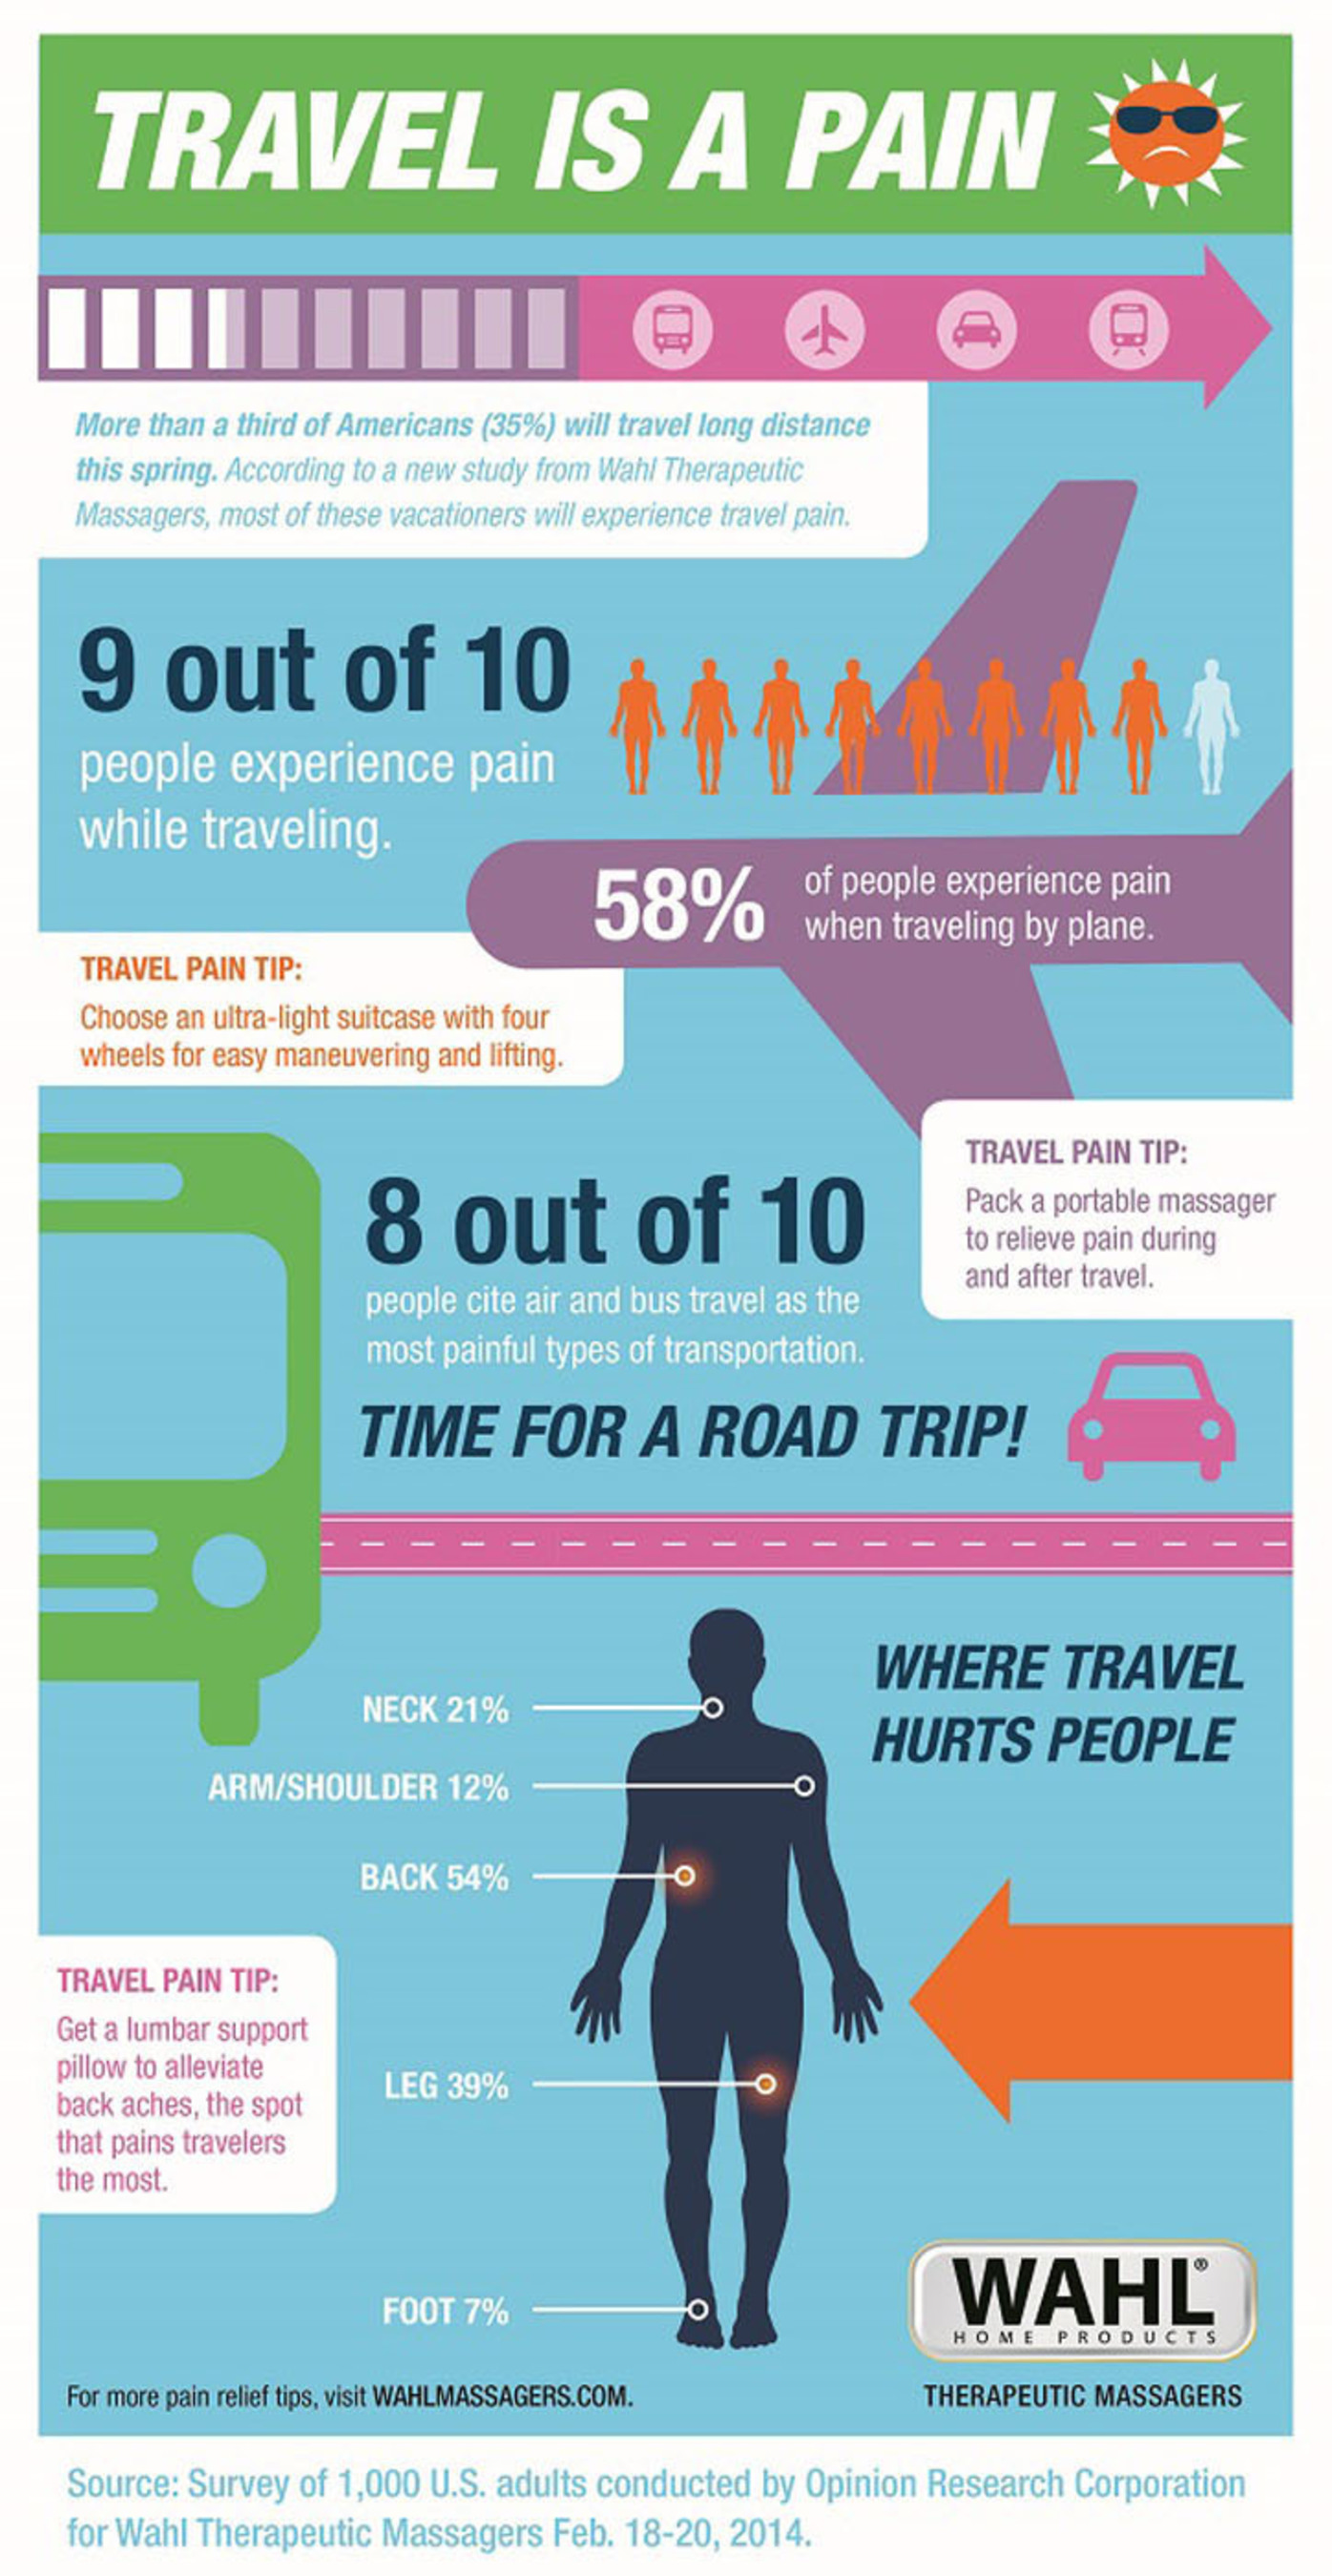 Wahl Travel is a Pain infographic share details about how pain affects us when we travel.  (PRNewsFoto/Wahl Home Products)